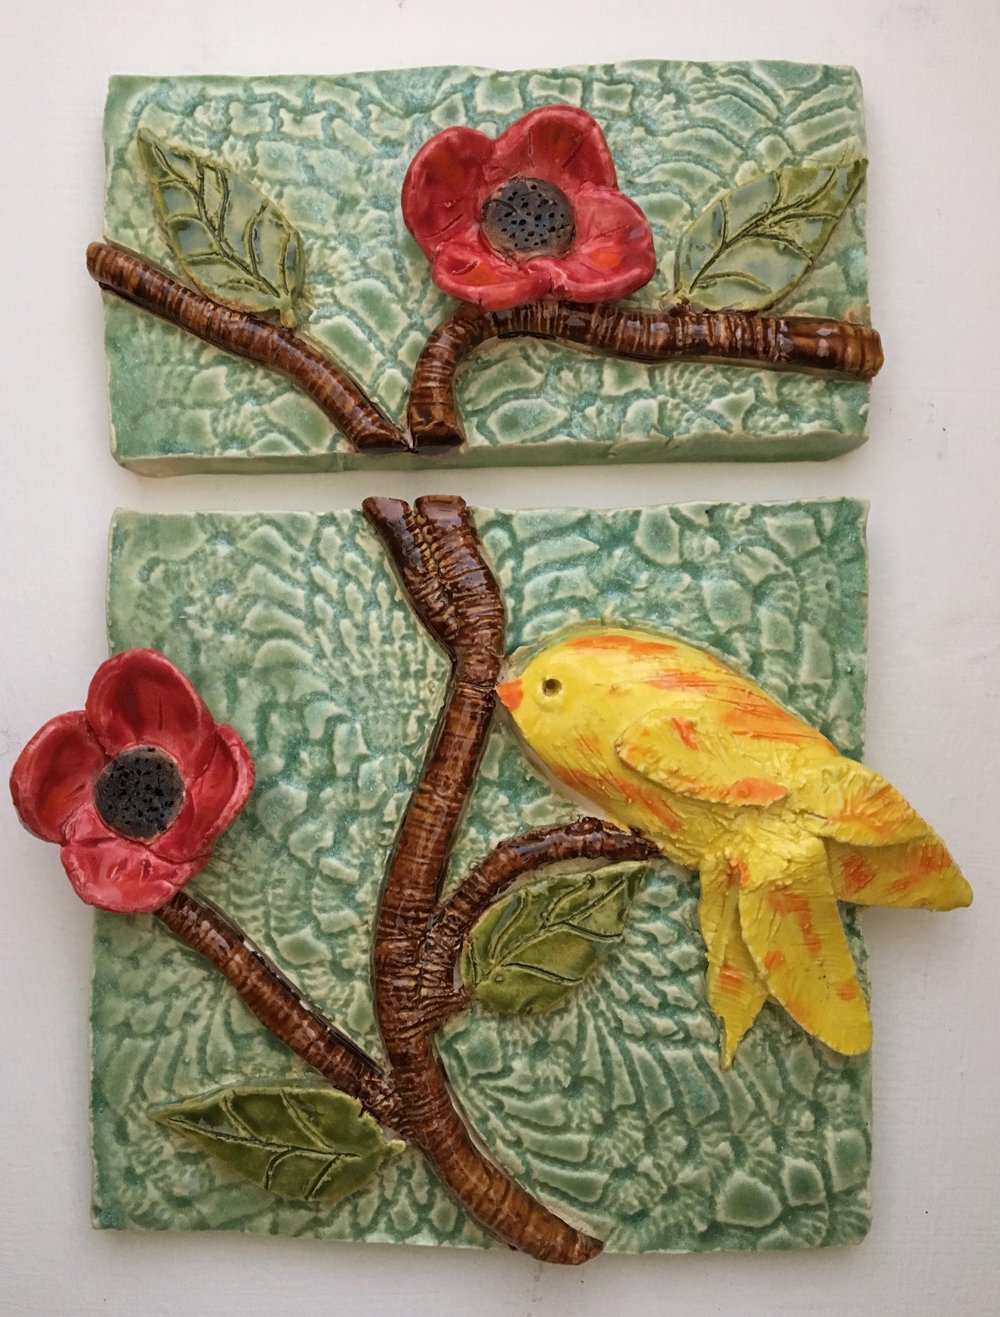 Wall tile by Amanda Baltazar